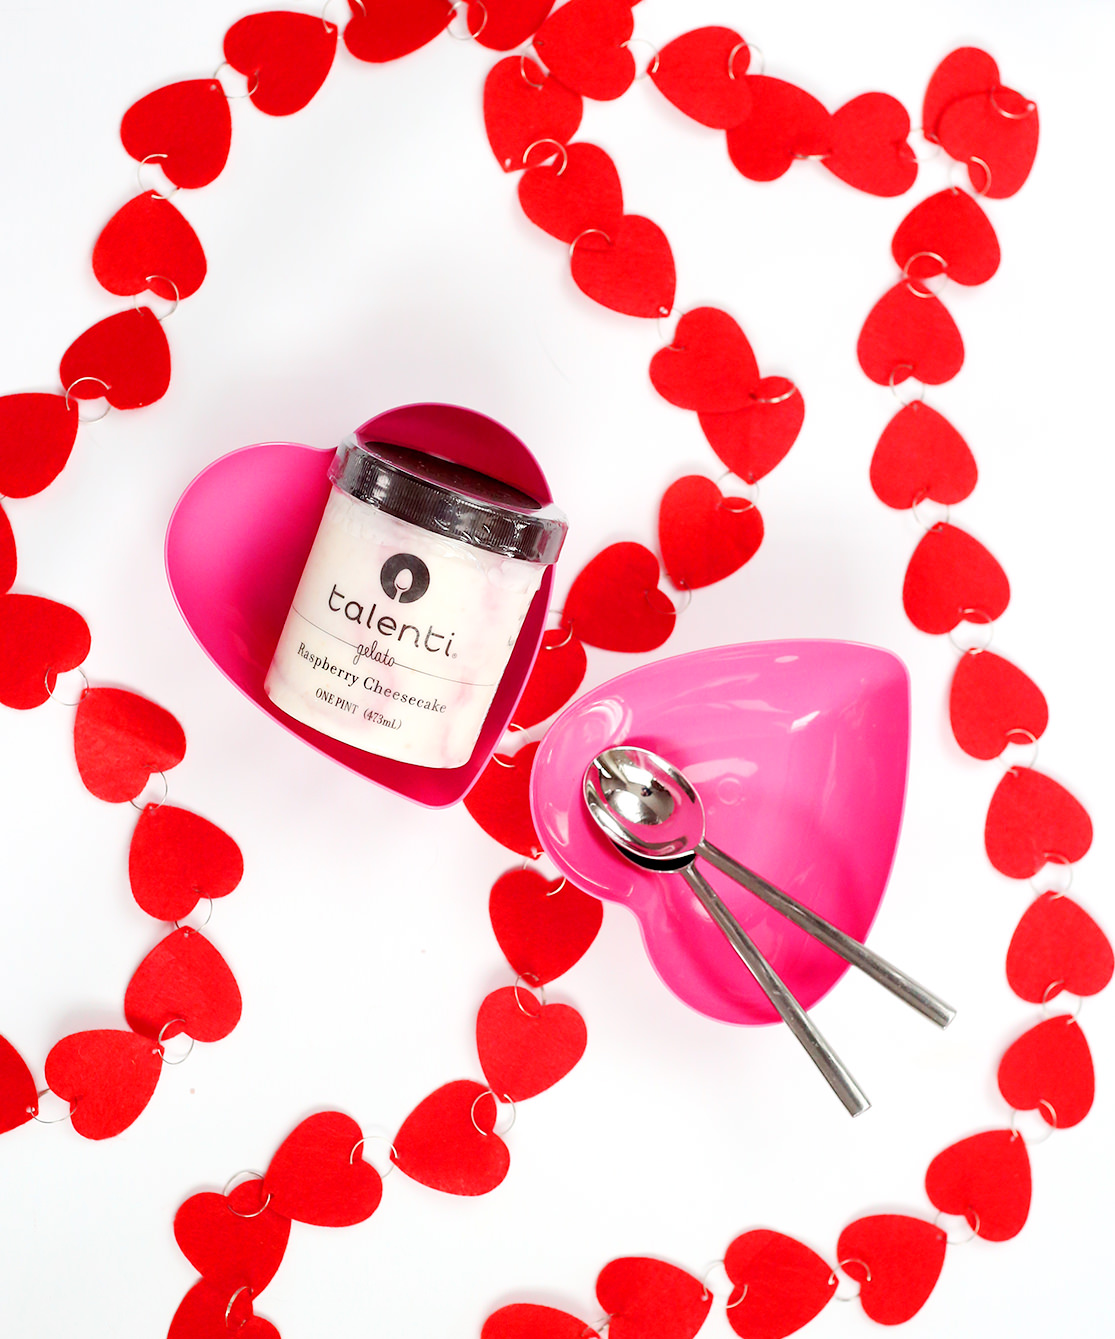 Fun and festive gifts for your Galentines- all from the grocery store! Lily & Val Living